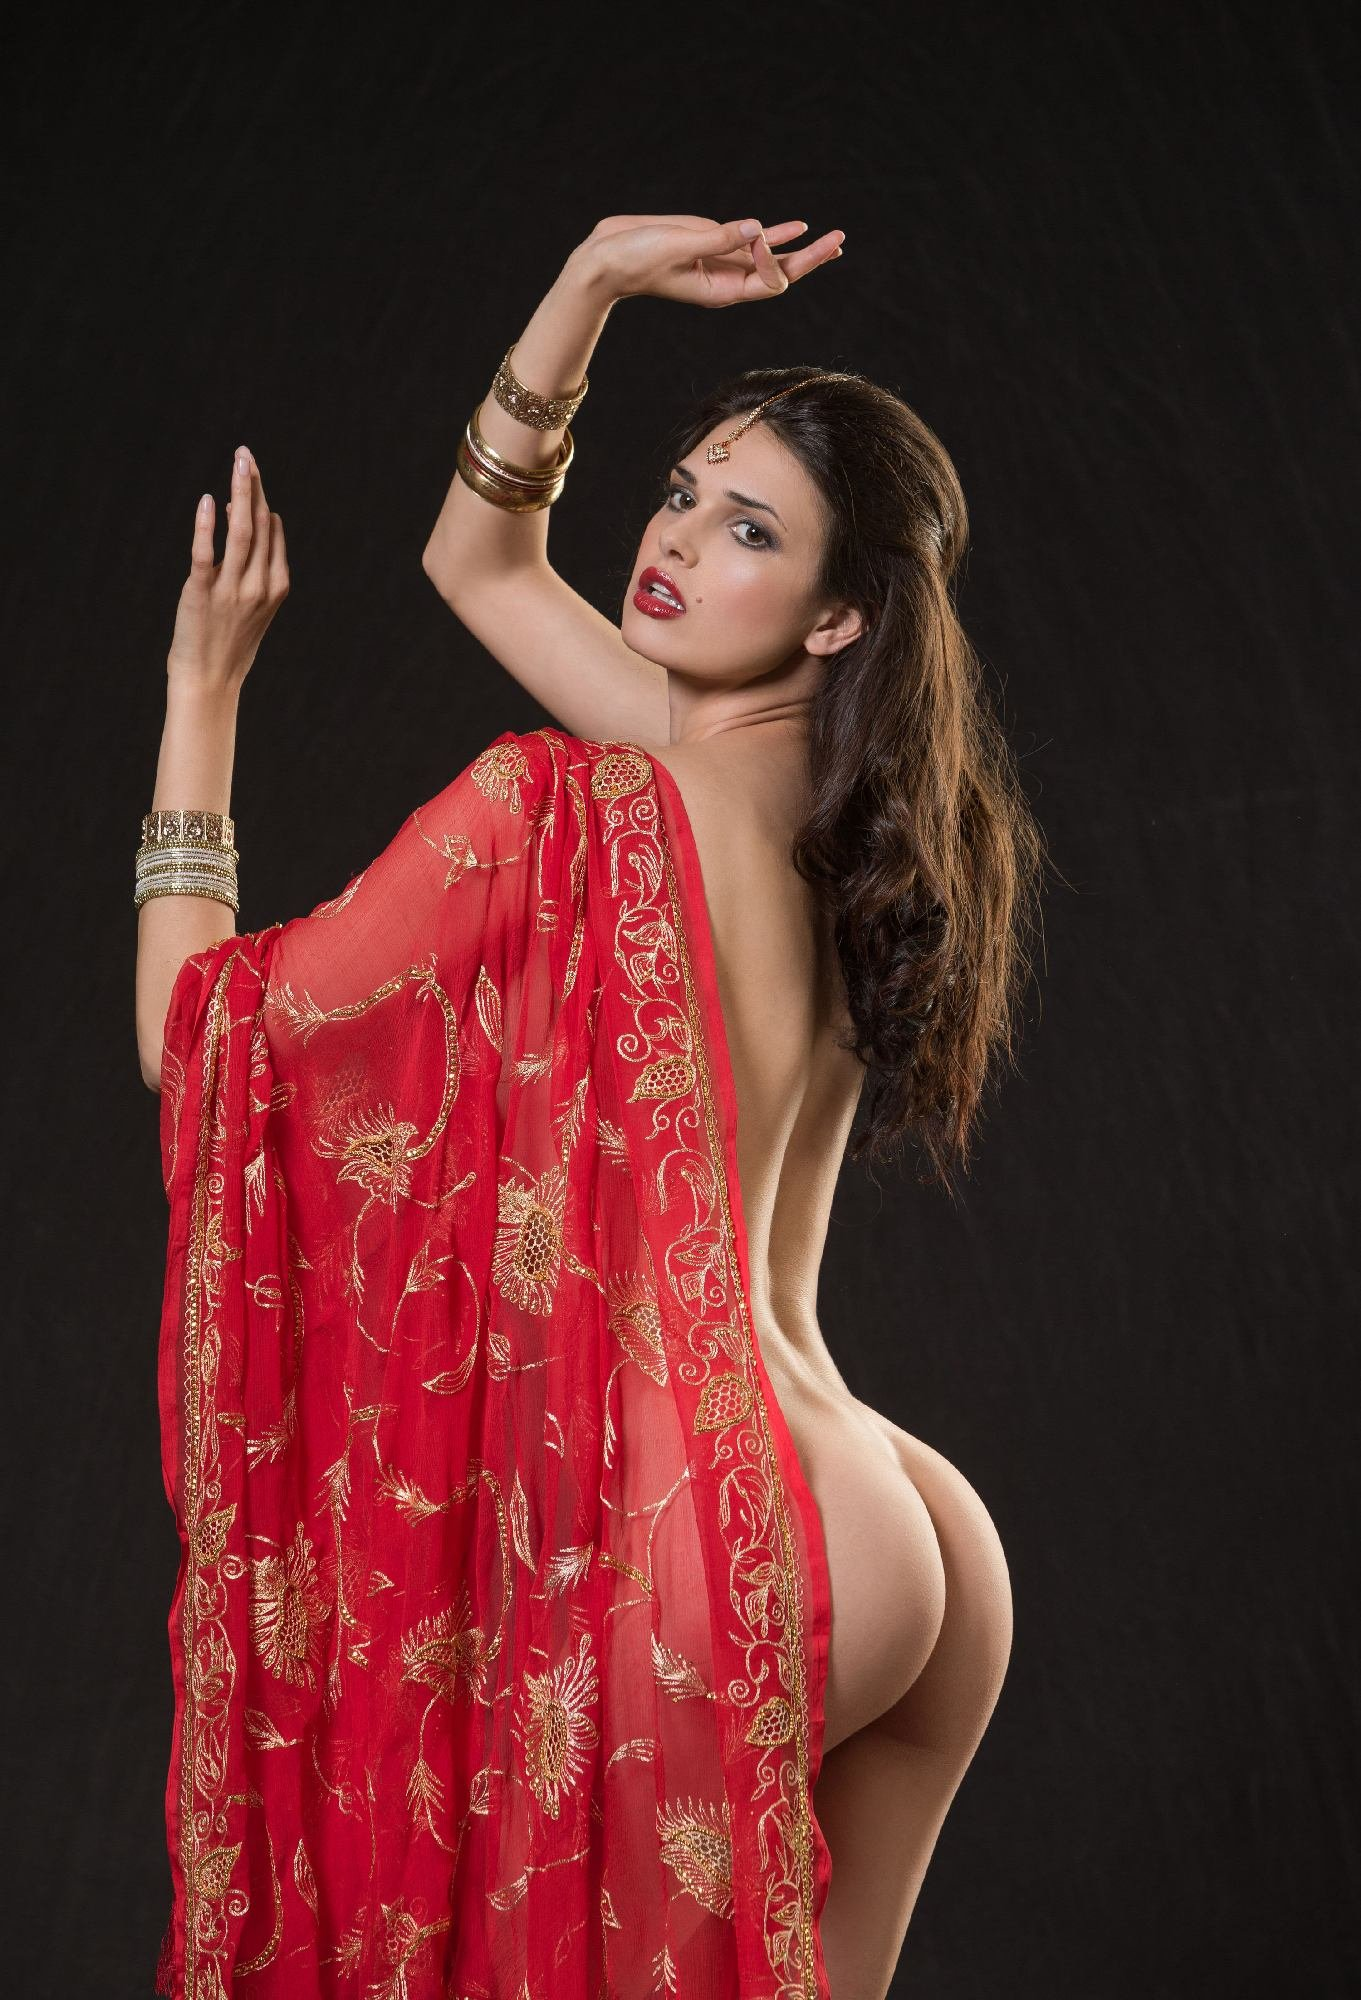 Sexy photo indian girl — 2